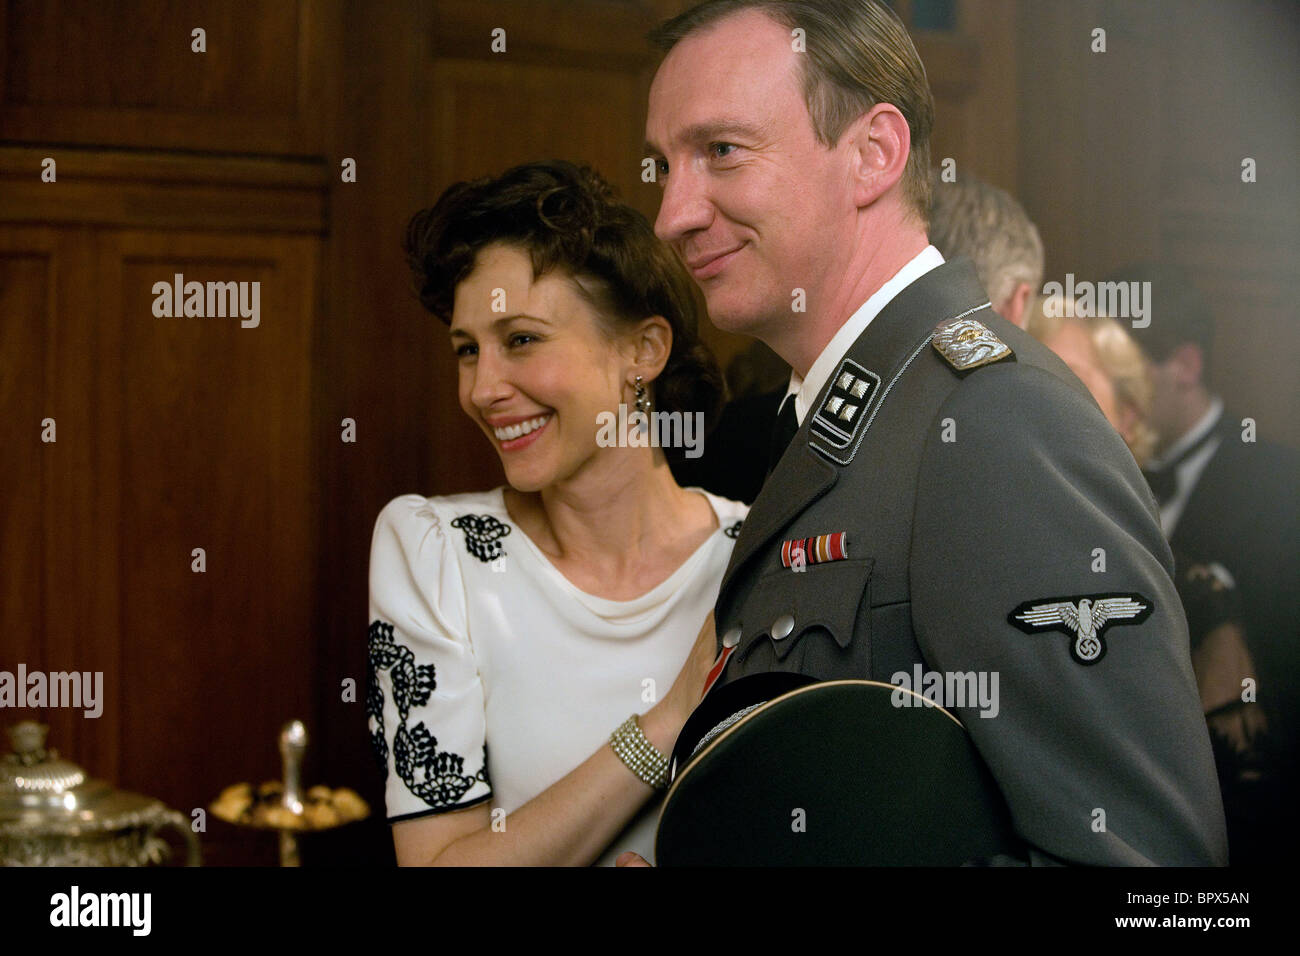 vera stock photos vera stock images alamy vera farmiga david thewlis the boy in the striped pyjamas 2008 stock